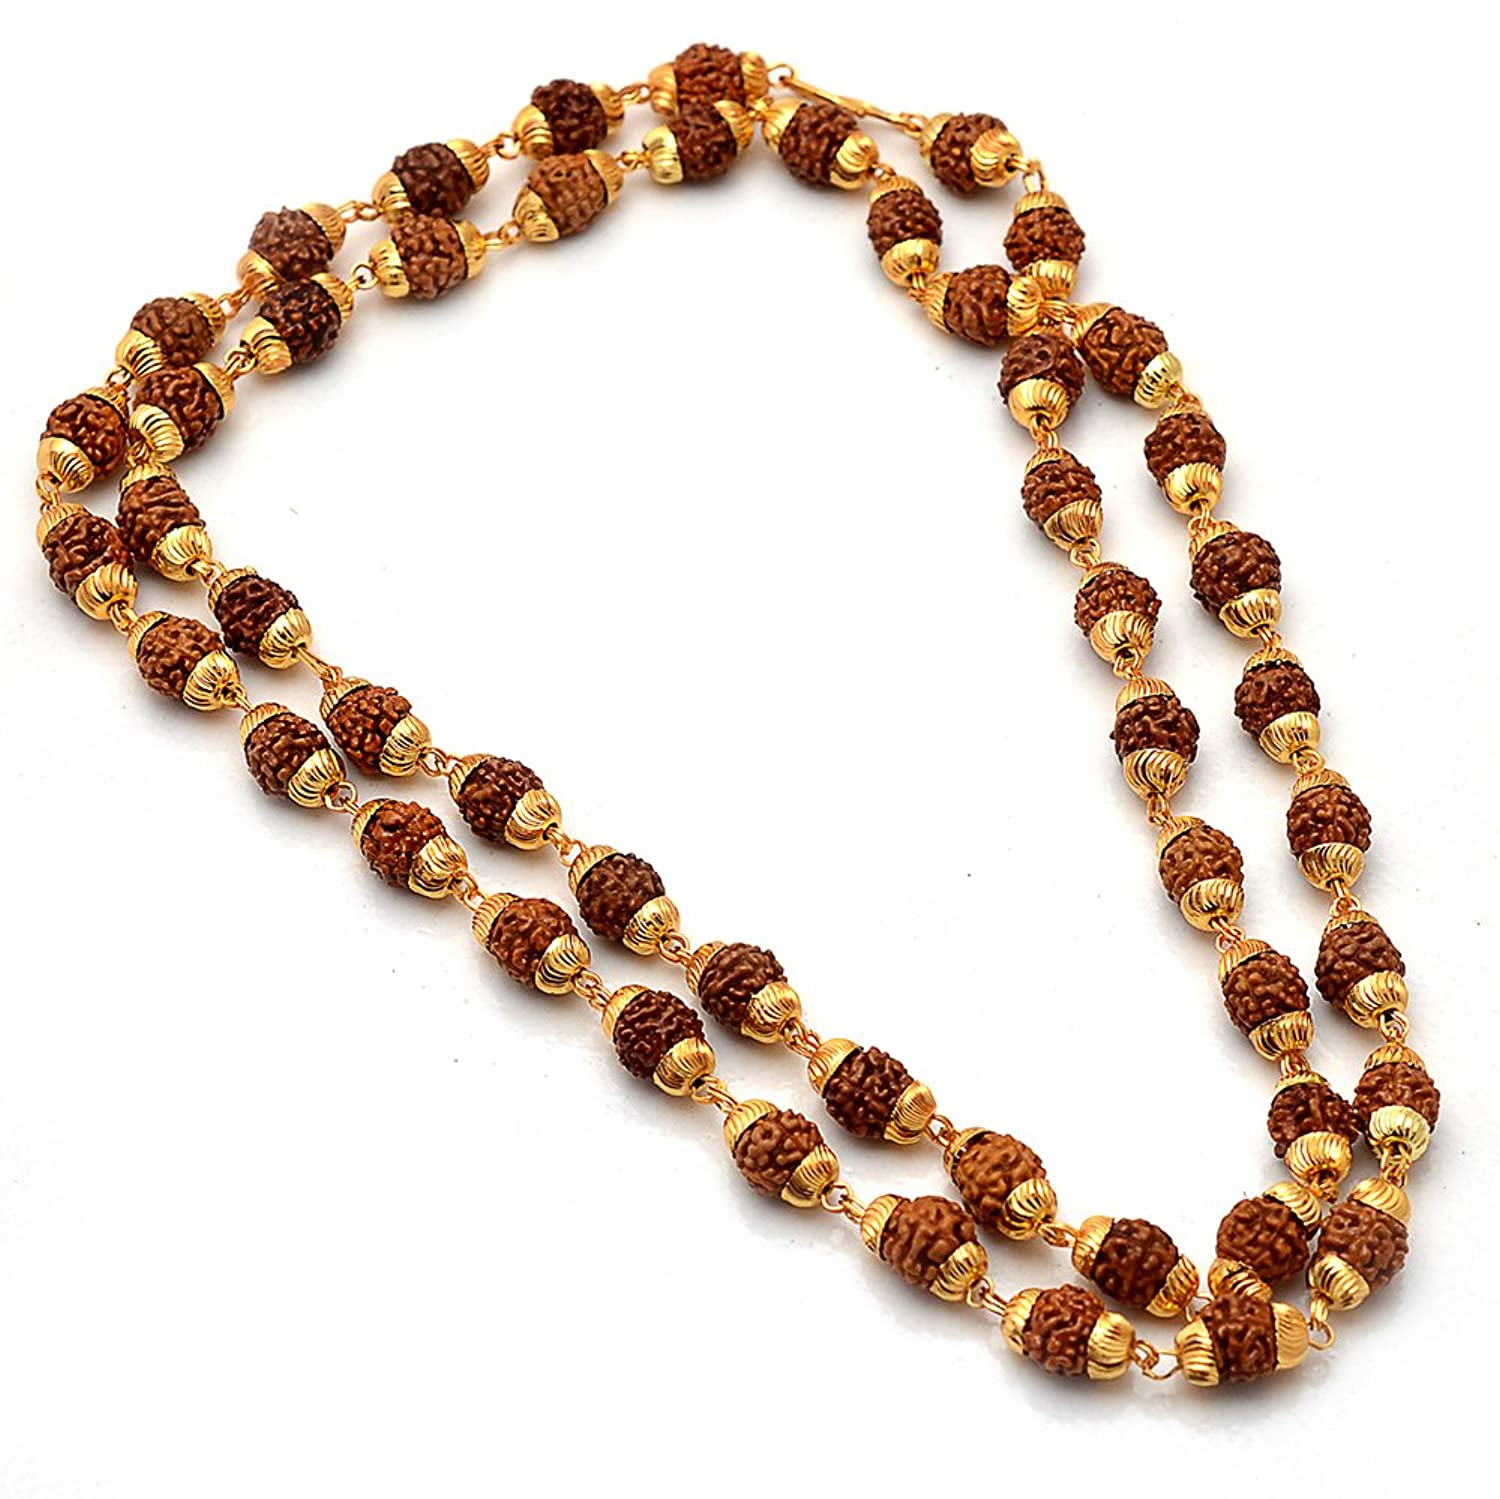 Necklaces for Men: Buy Necklaces for Men Online at Best Prices in ...